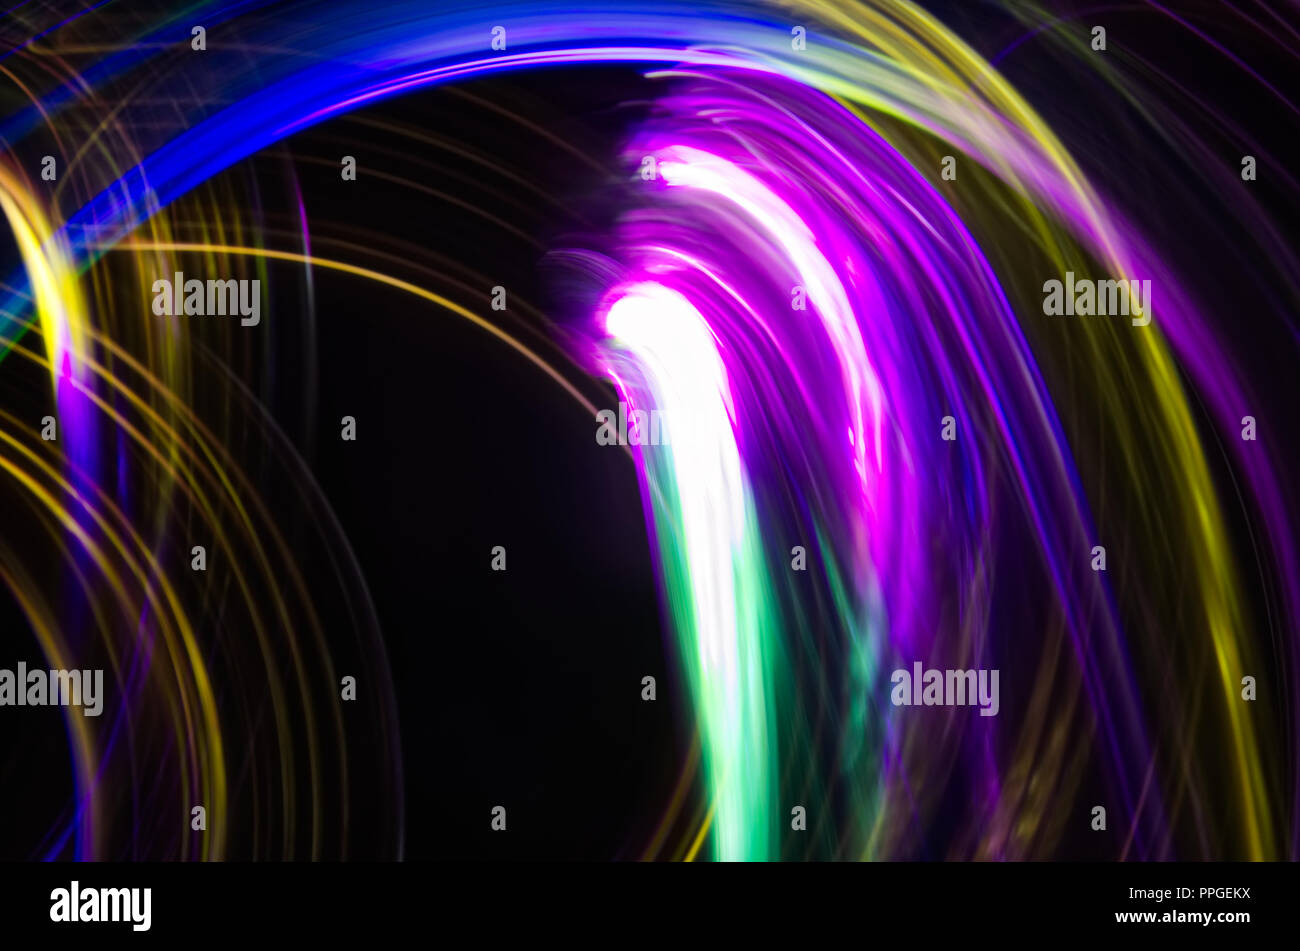 Abstract Background good for an advert, Pretty Swirls of Light, In bright Colours. Neon Effect. - Stock Image